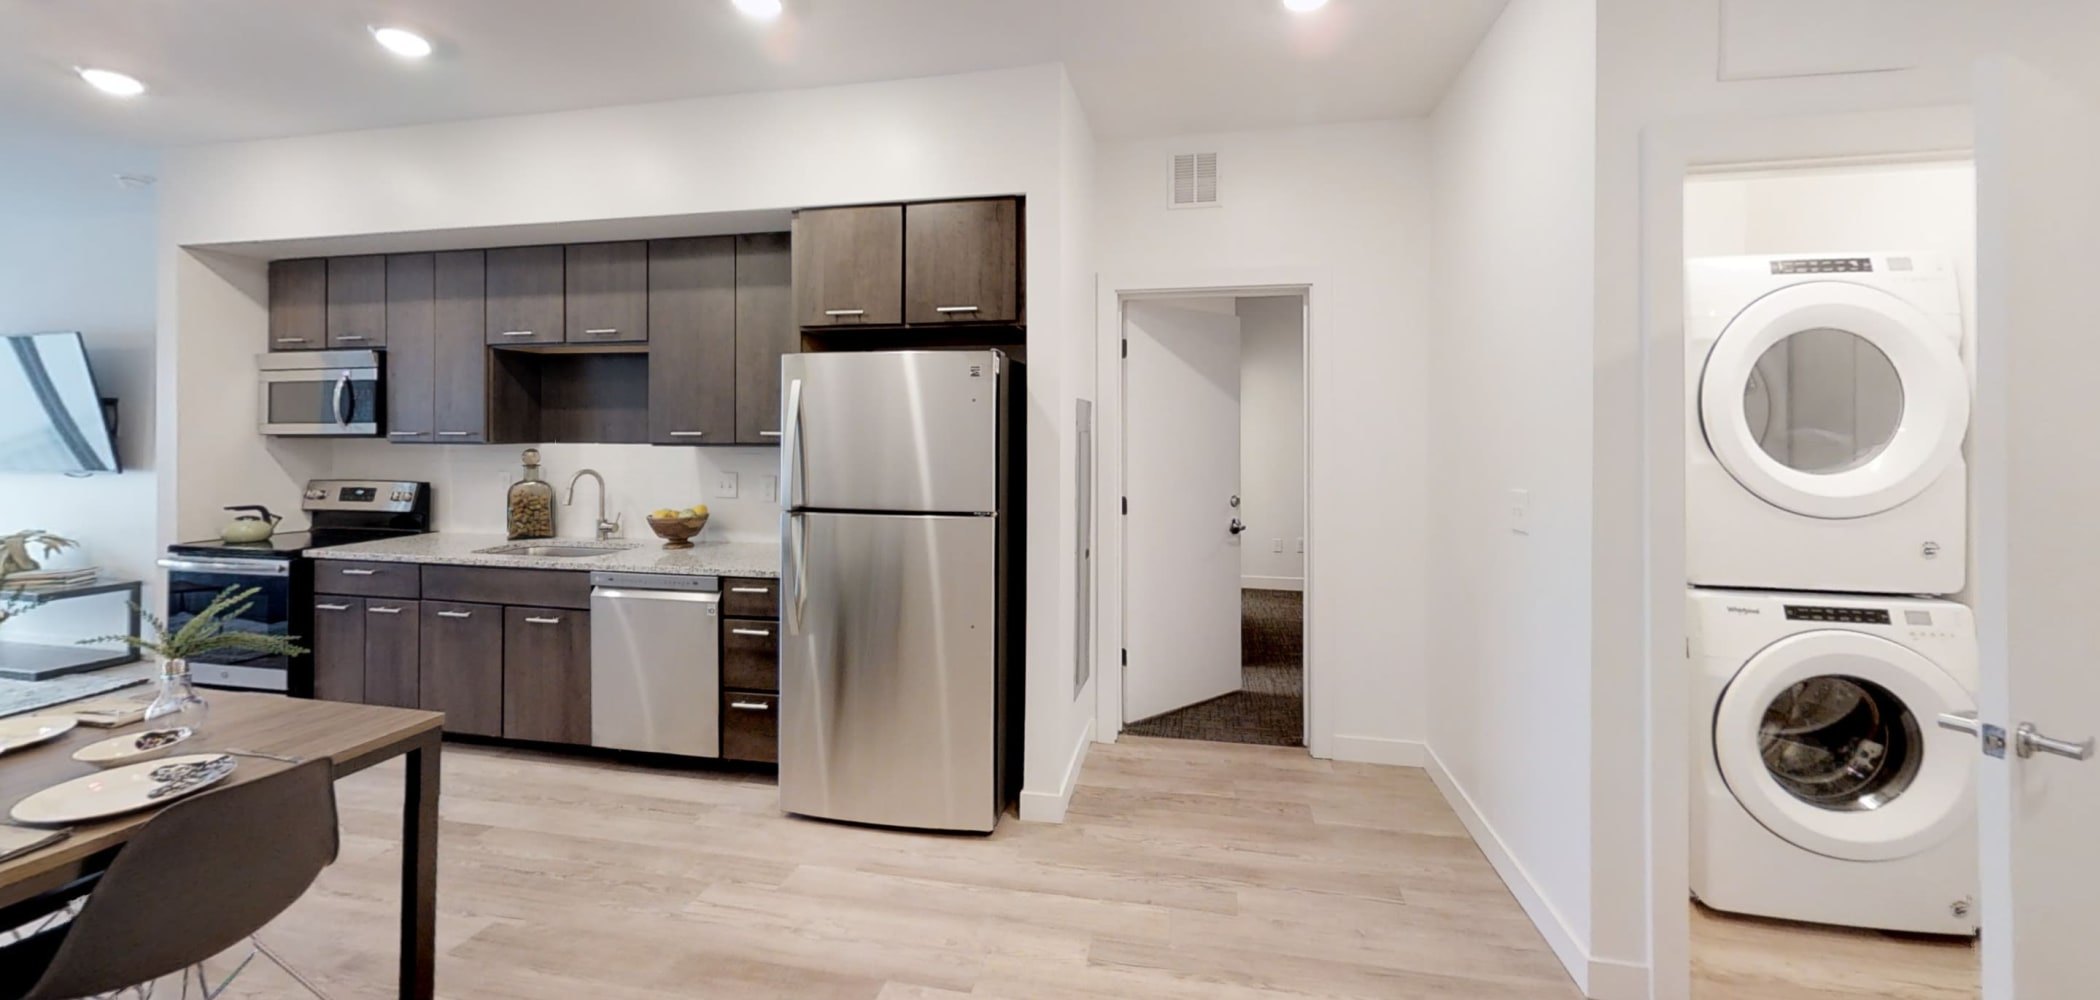 Washer and dryer in home for easy access at The View on Pavey Square in Columbus, Ohio